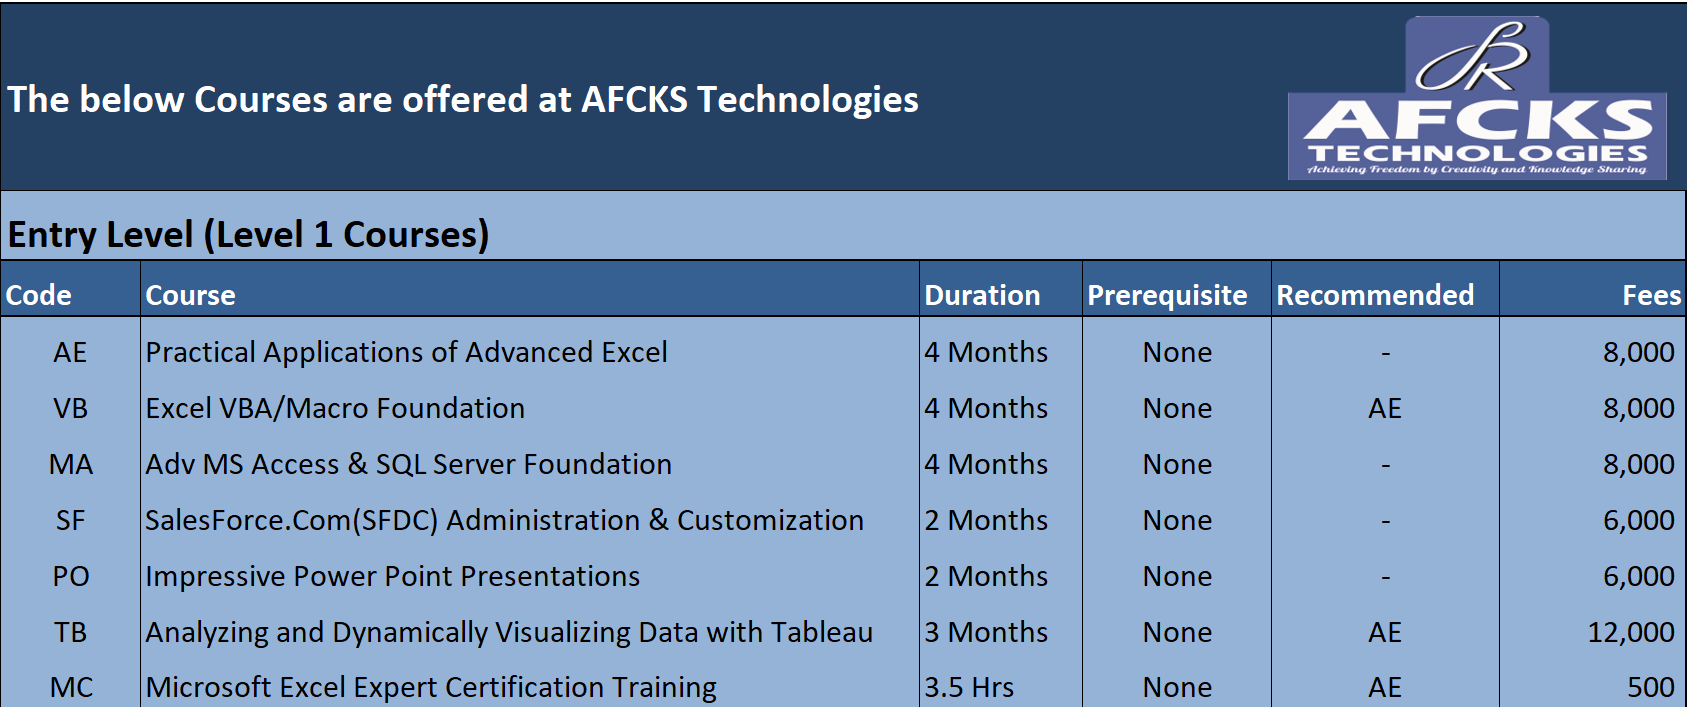 Courses Offered - AFCKS Technolgies